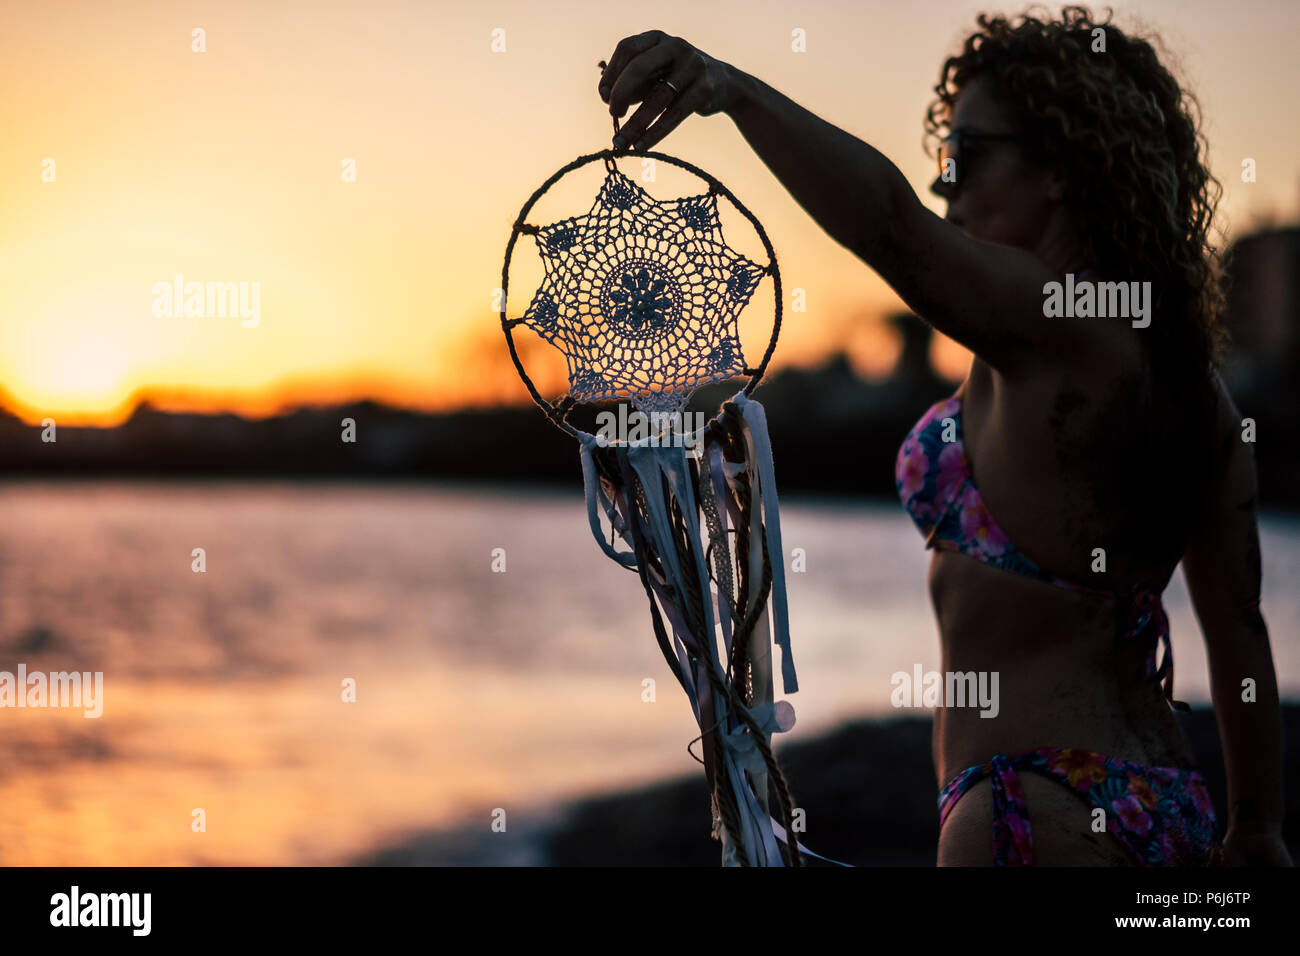 young beautiful woman take a dreamcatcher during the wonderful sunset at the beach in front of the ocean. feeling with the nature and healthy lifestyl Stock Photo